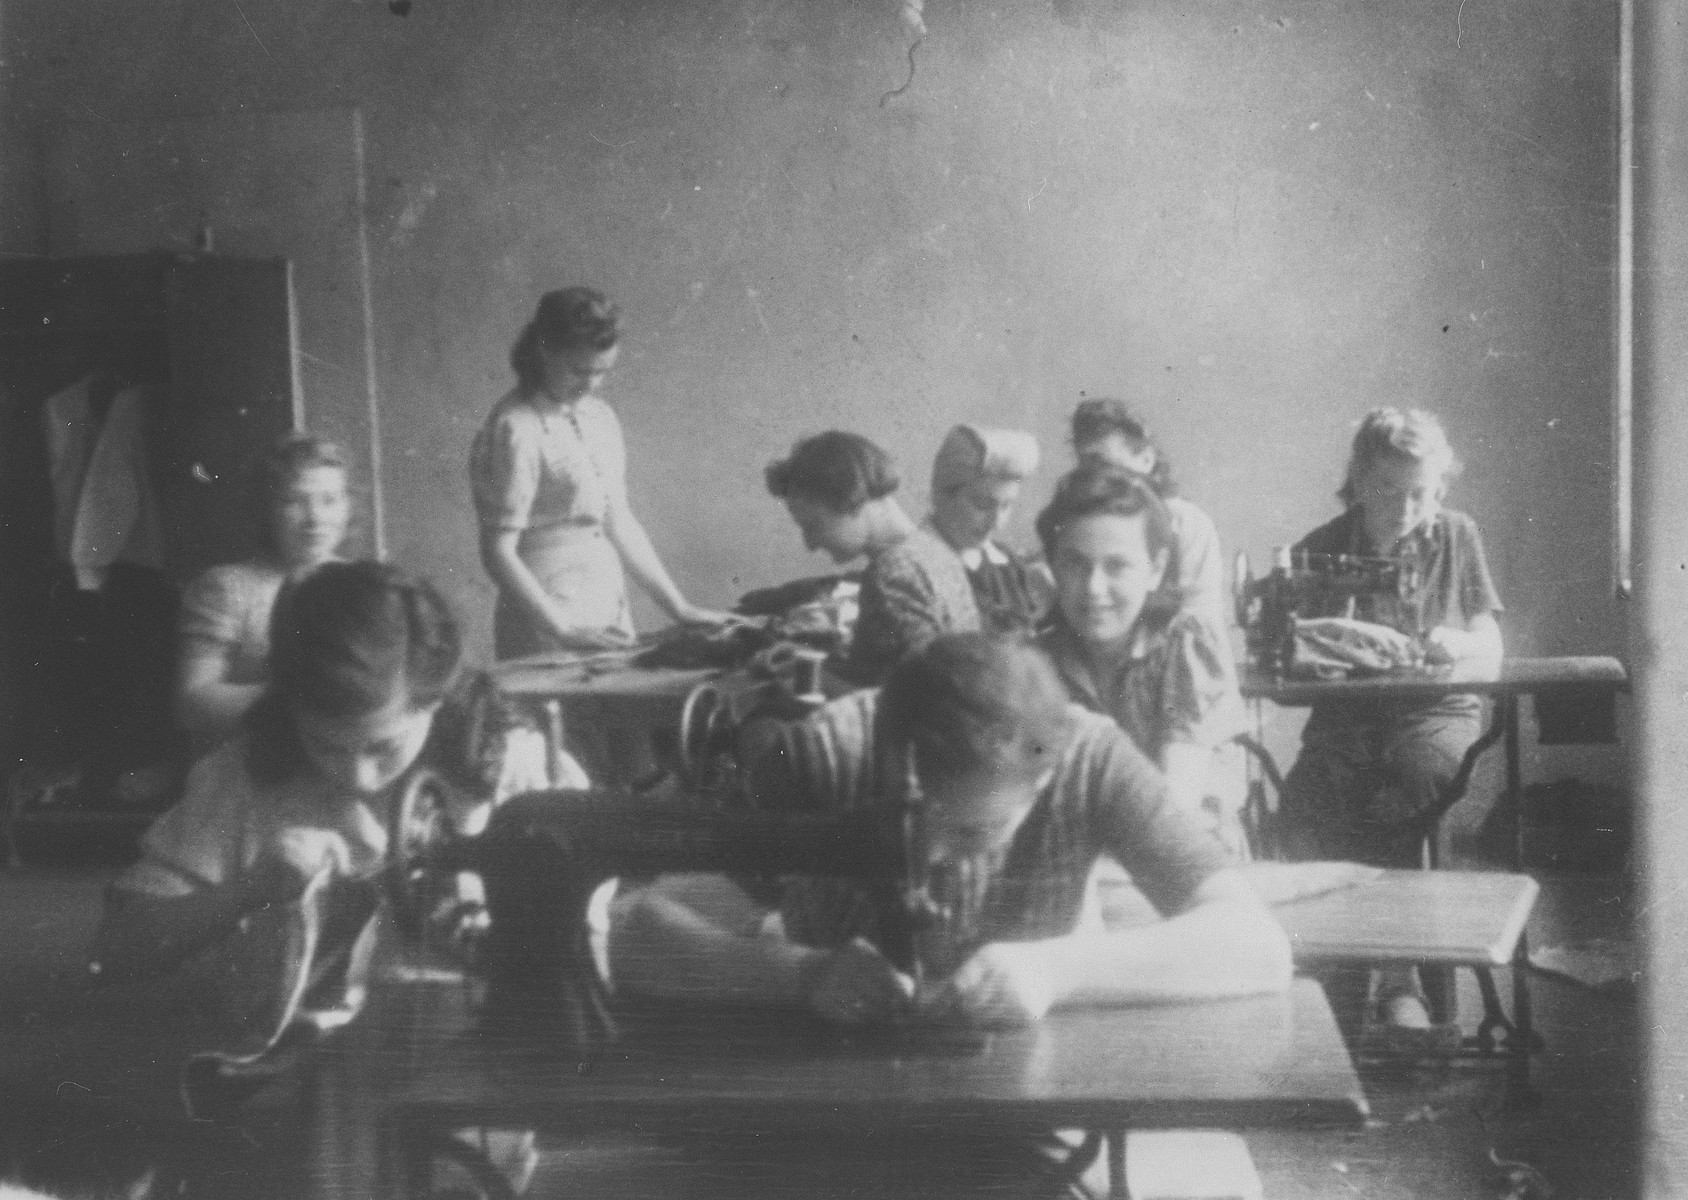 Jewish women learn to sew in a vocational training workshop in Lodz.  The woman in the back has her head fully covered since her hair still has not grown in since the war.